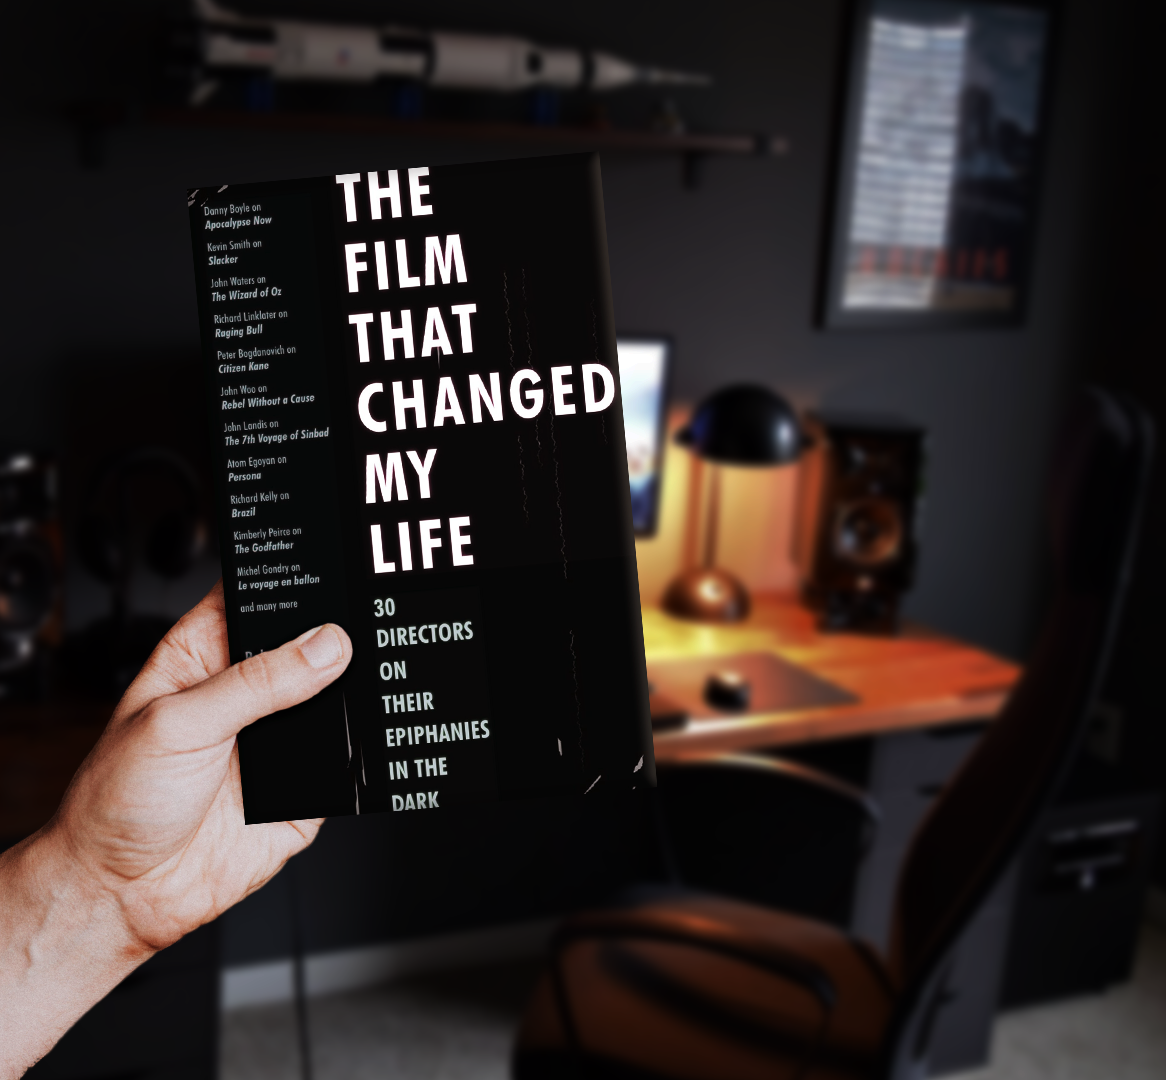 the film that changed my life book about filmmakers favorite moment in cinema movie danny boyle edgar wright richard linklater kevin smith